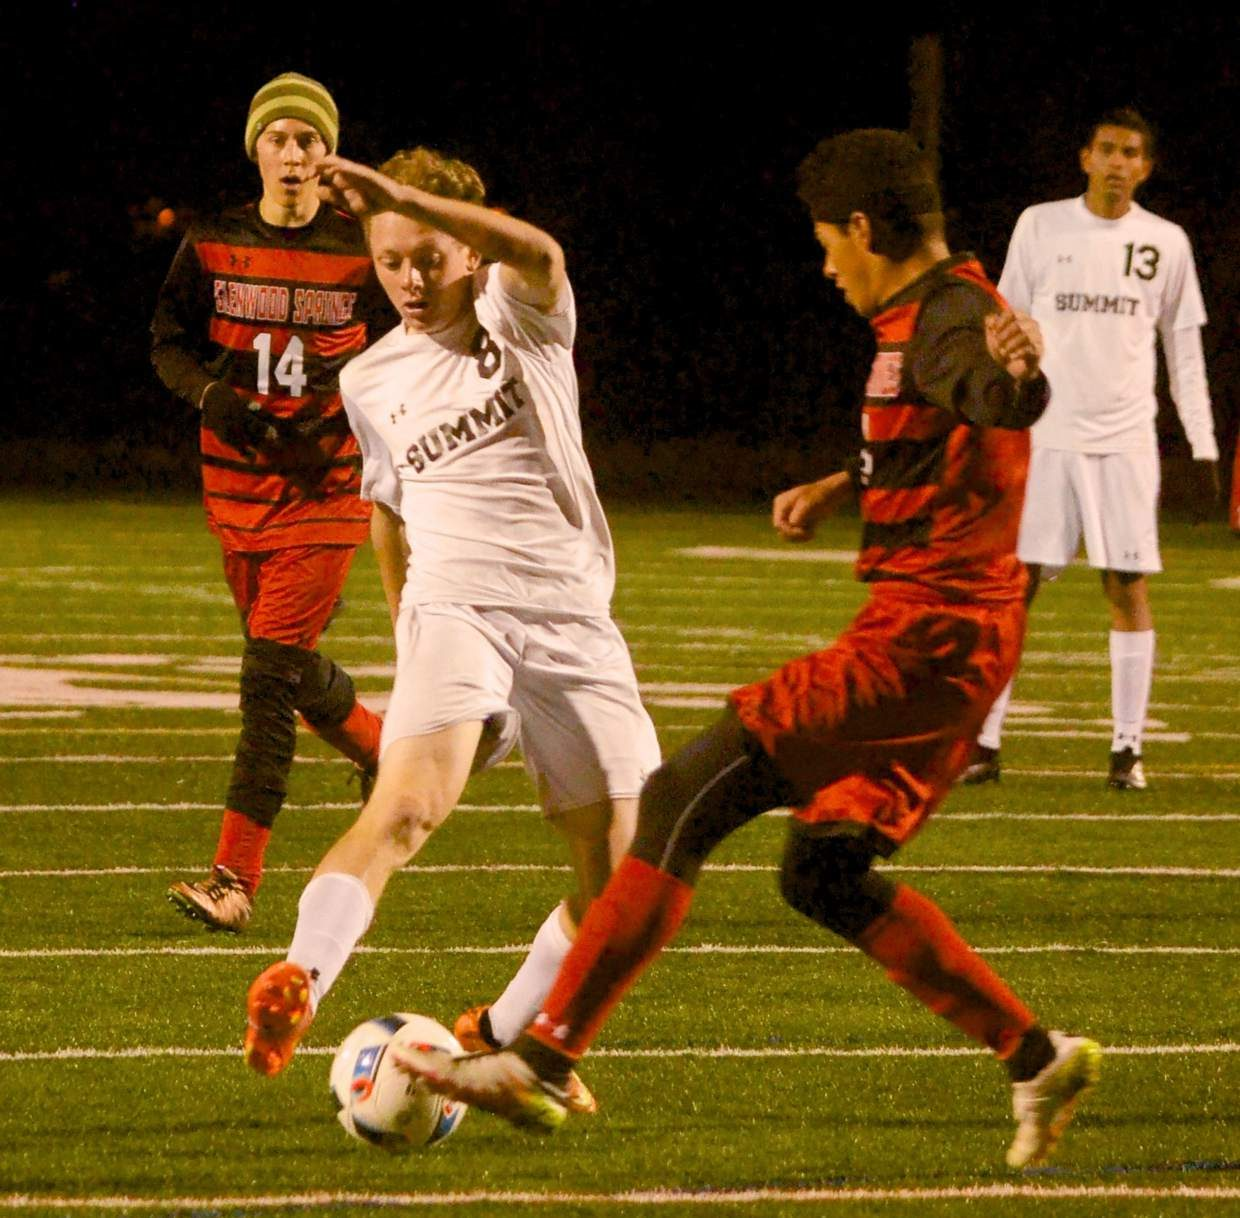 Summit junior midfielder Conor Craig winds through Glenwood Springs defenders during the second half of a home varsity soccer game on Oct. 11. The Tigers won, 2-0.